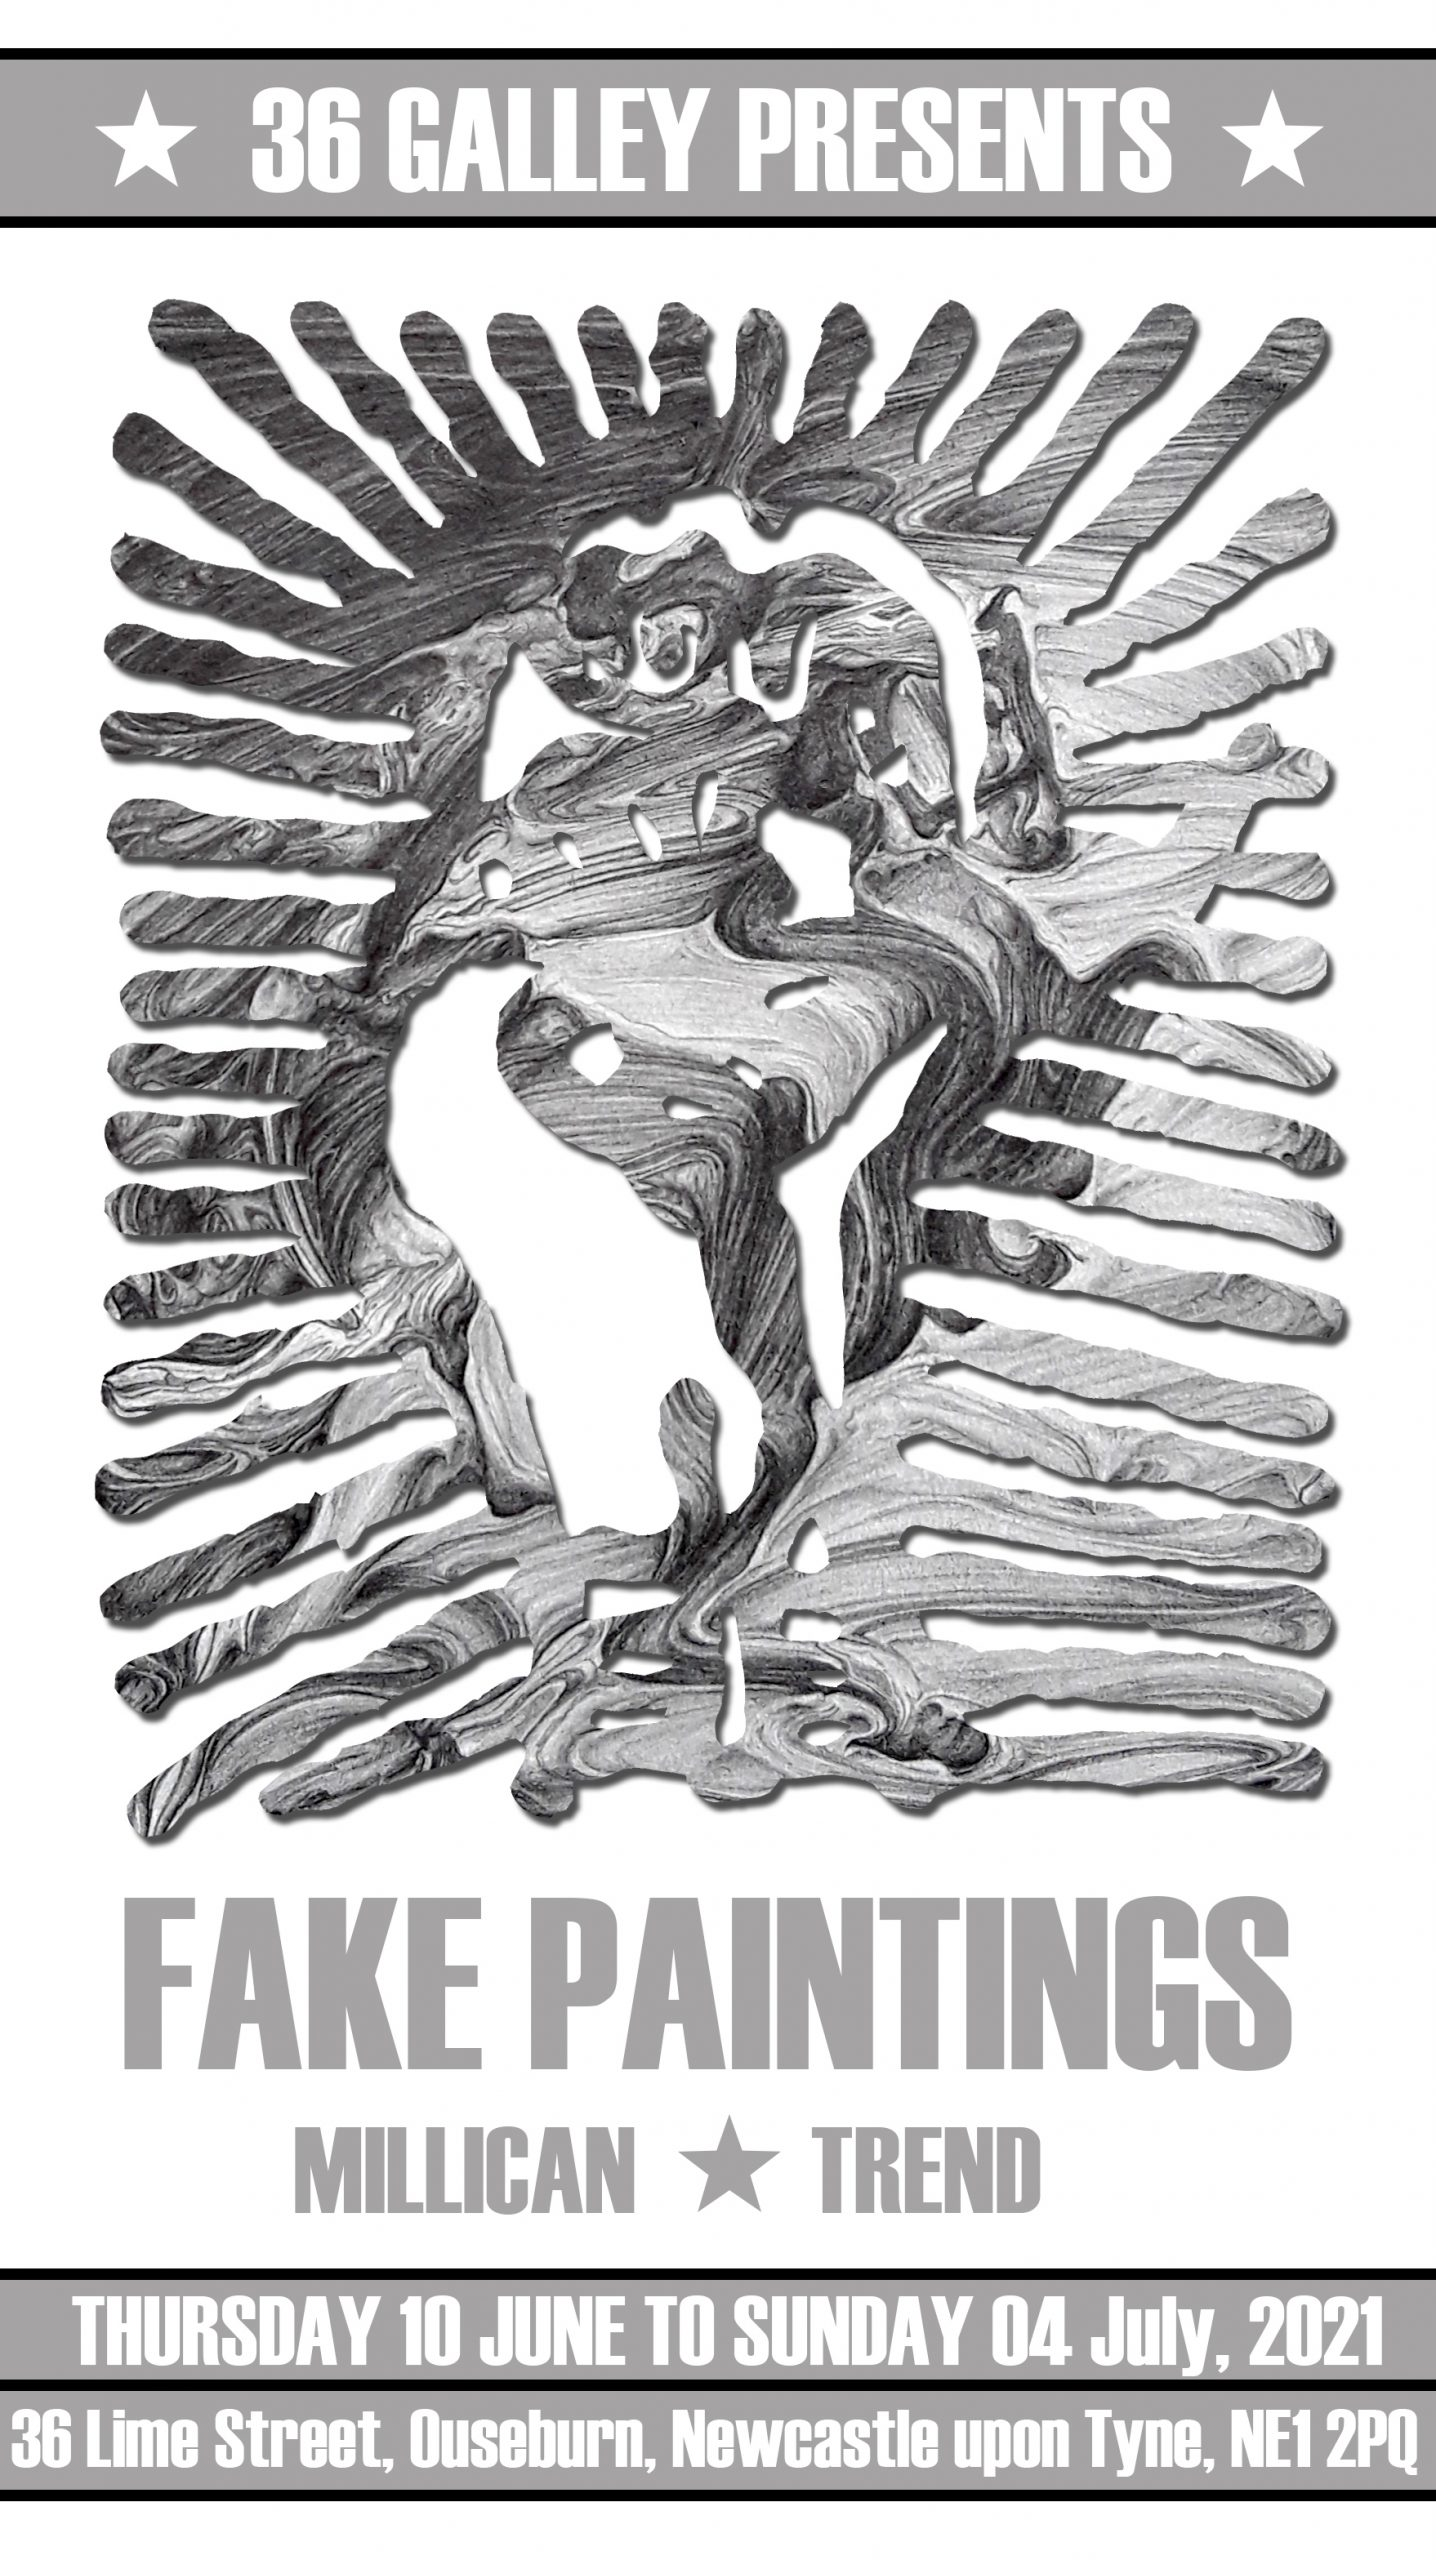 Poster for fake paintings exhibition